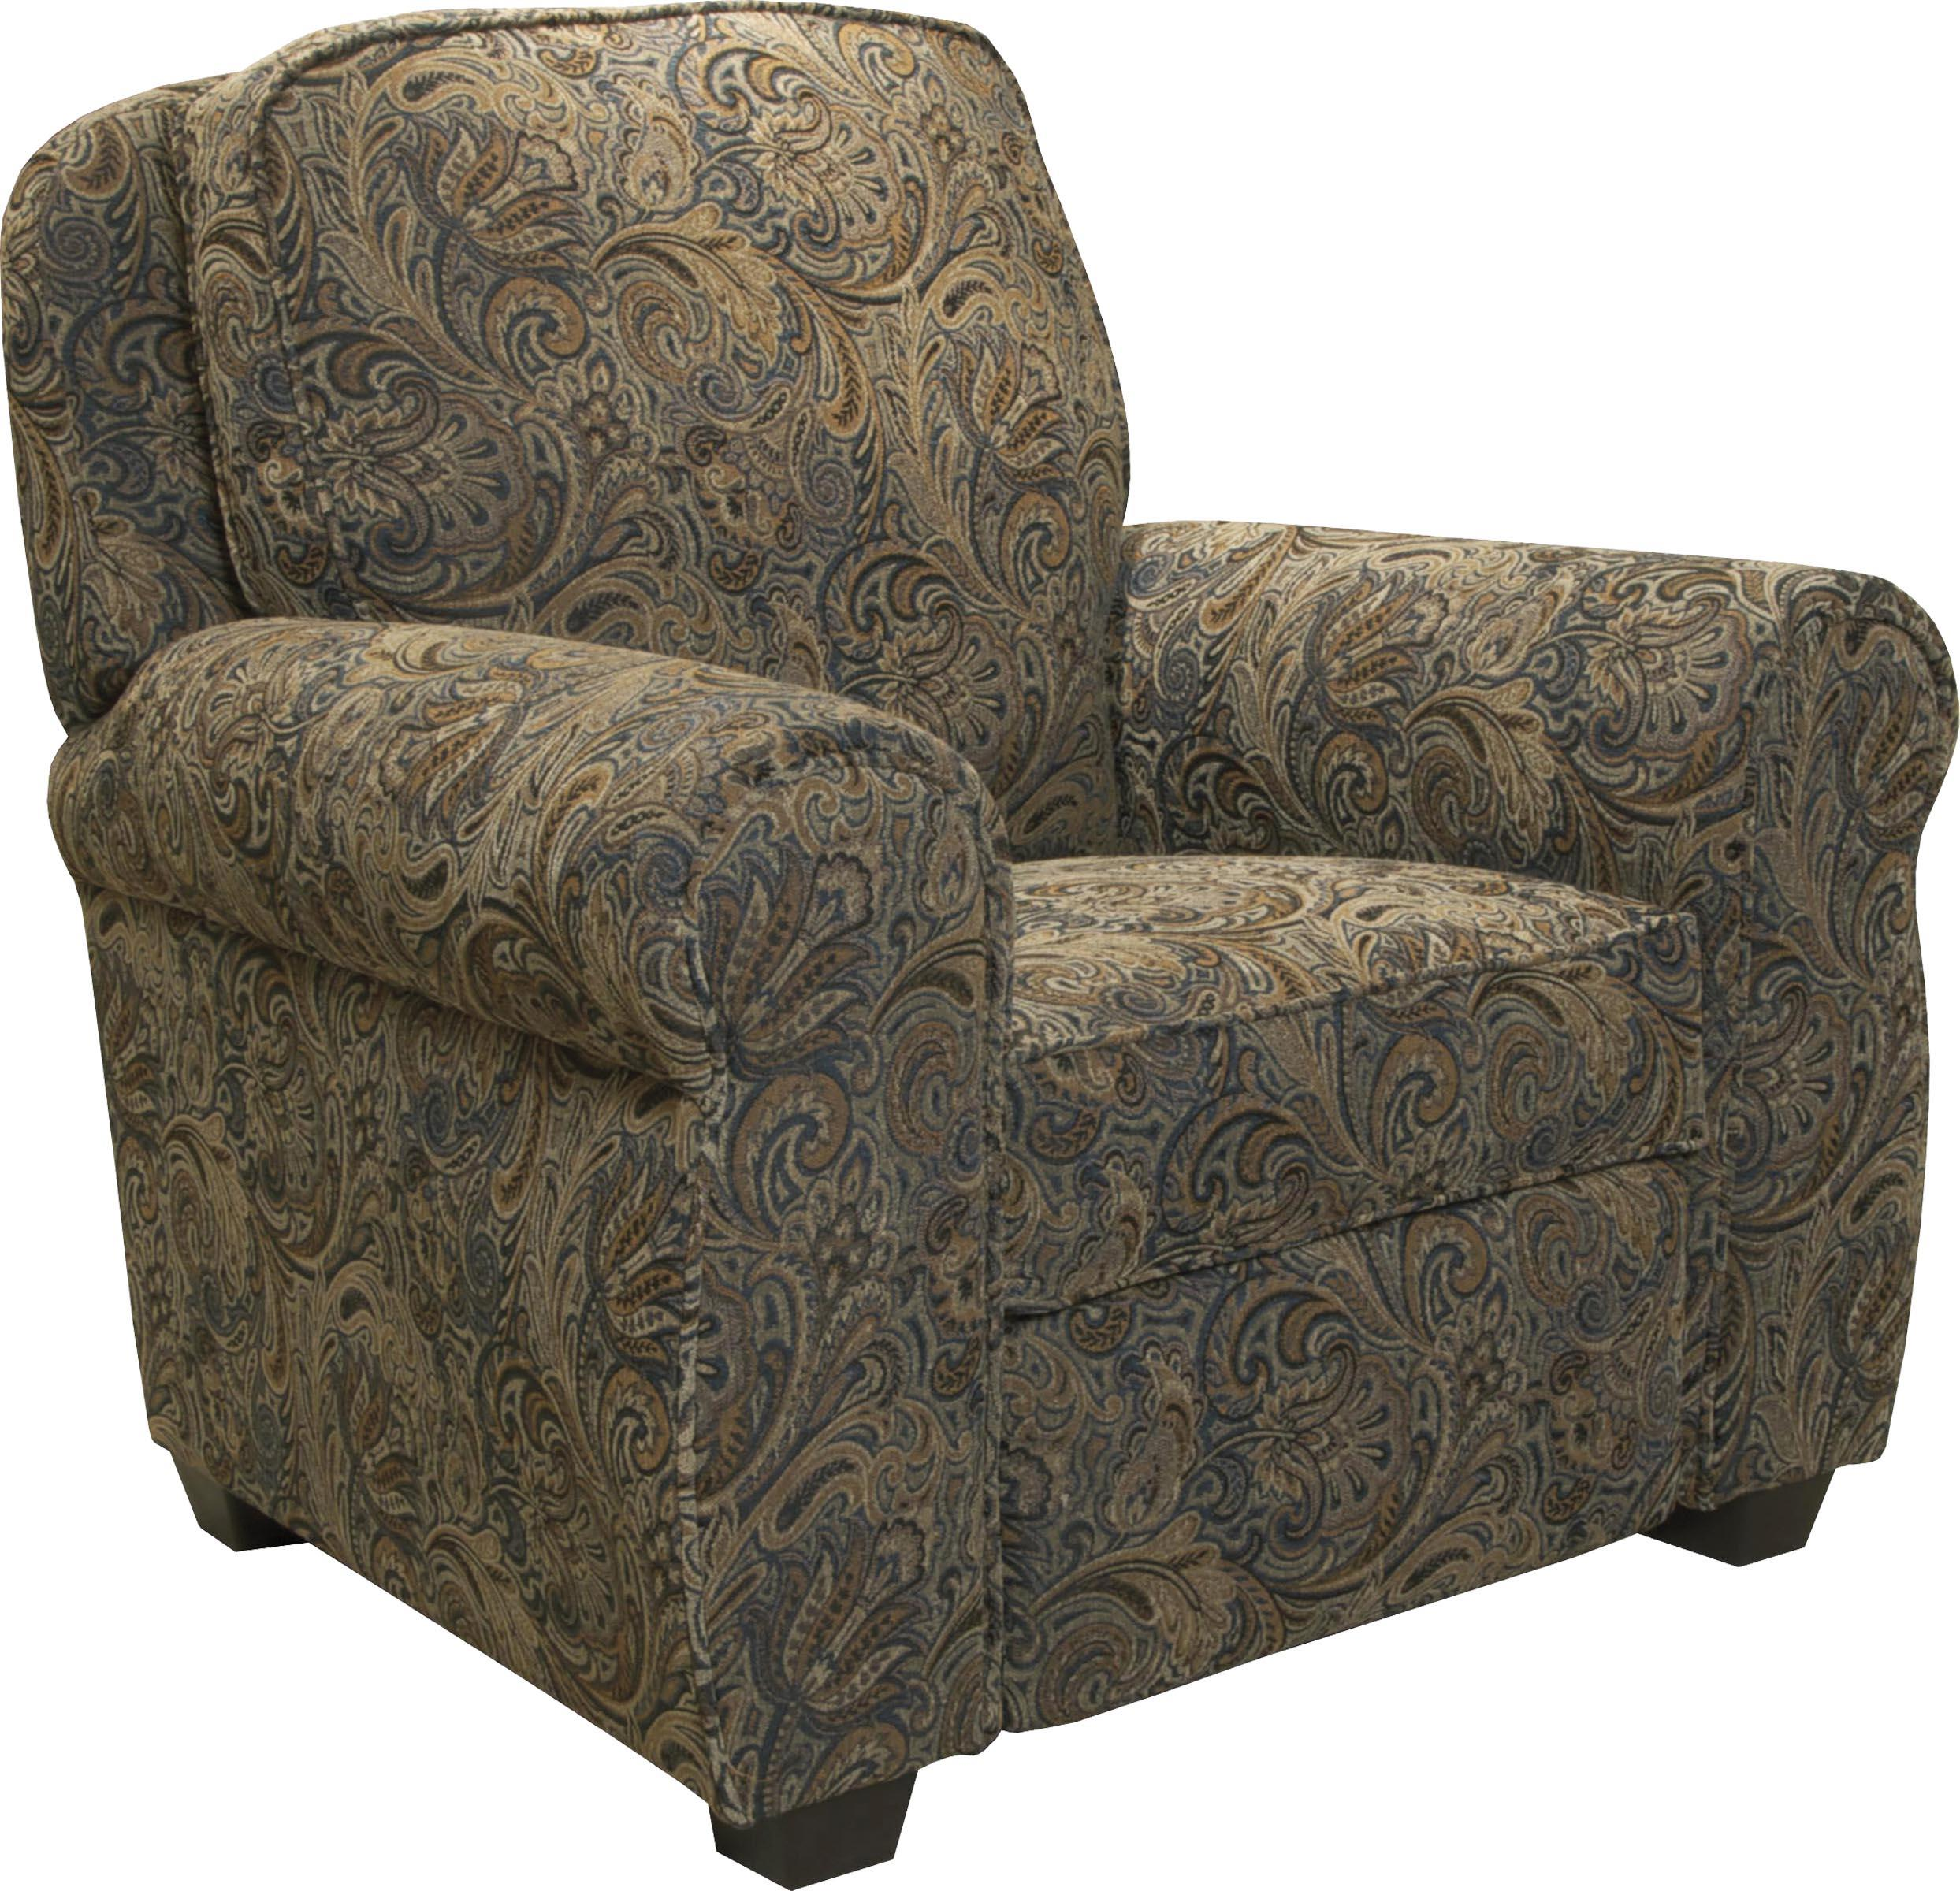 Jackson Furniture Downing Press Back Recliner - Item Number: 4384-11-2907-35